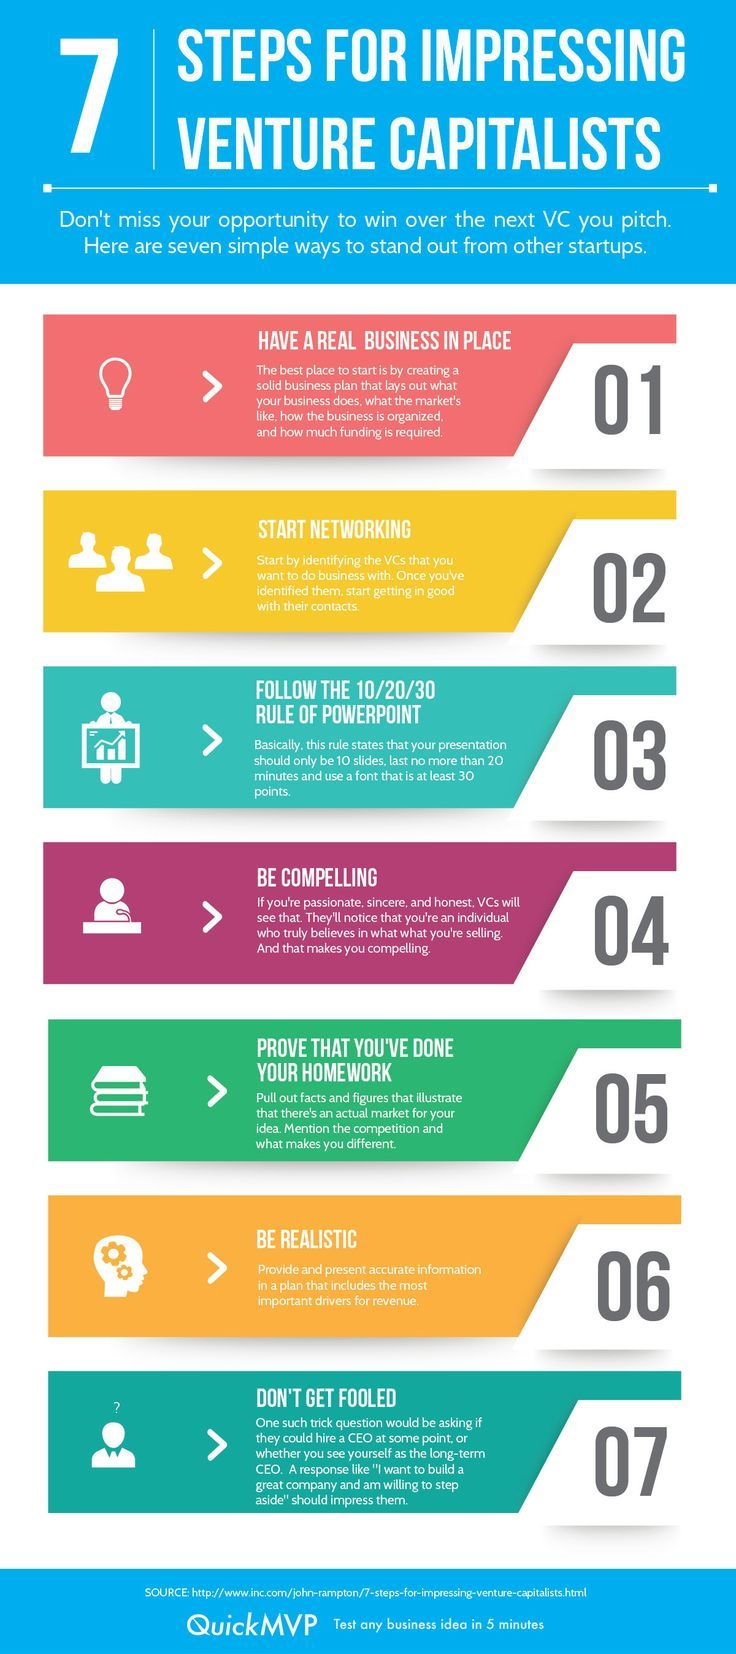 7 Steps for Impressing Venture Capitalists infographic